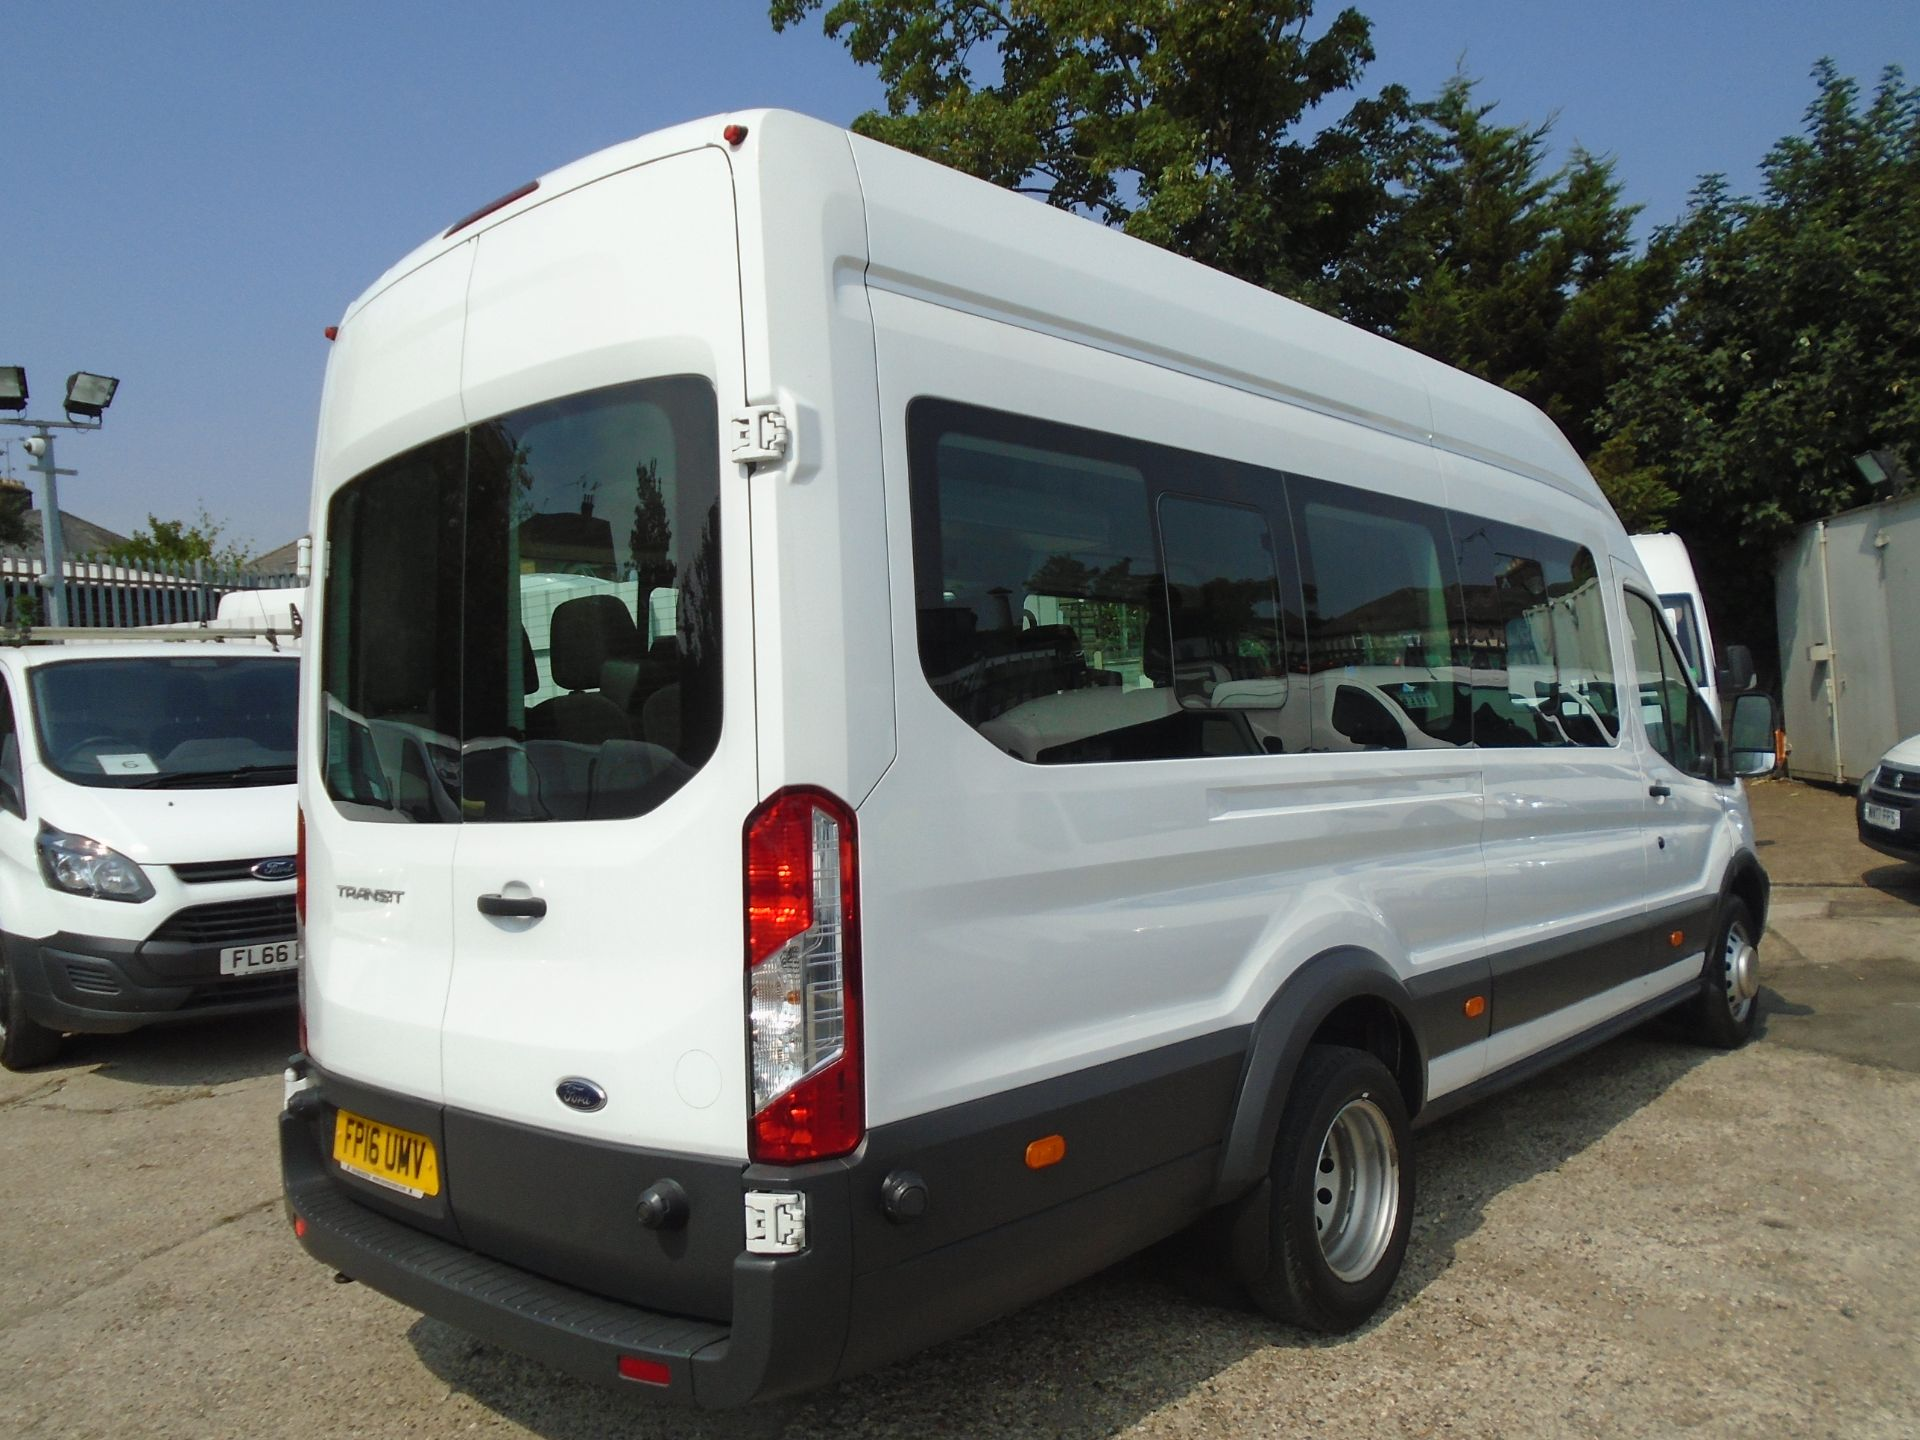 2016 Ford Transit 2.2 Tdci 125Ps H3 17 Seater (FP16UMV) Image 6